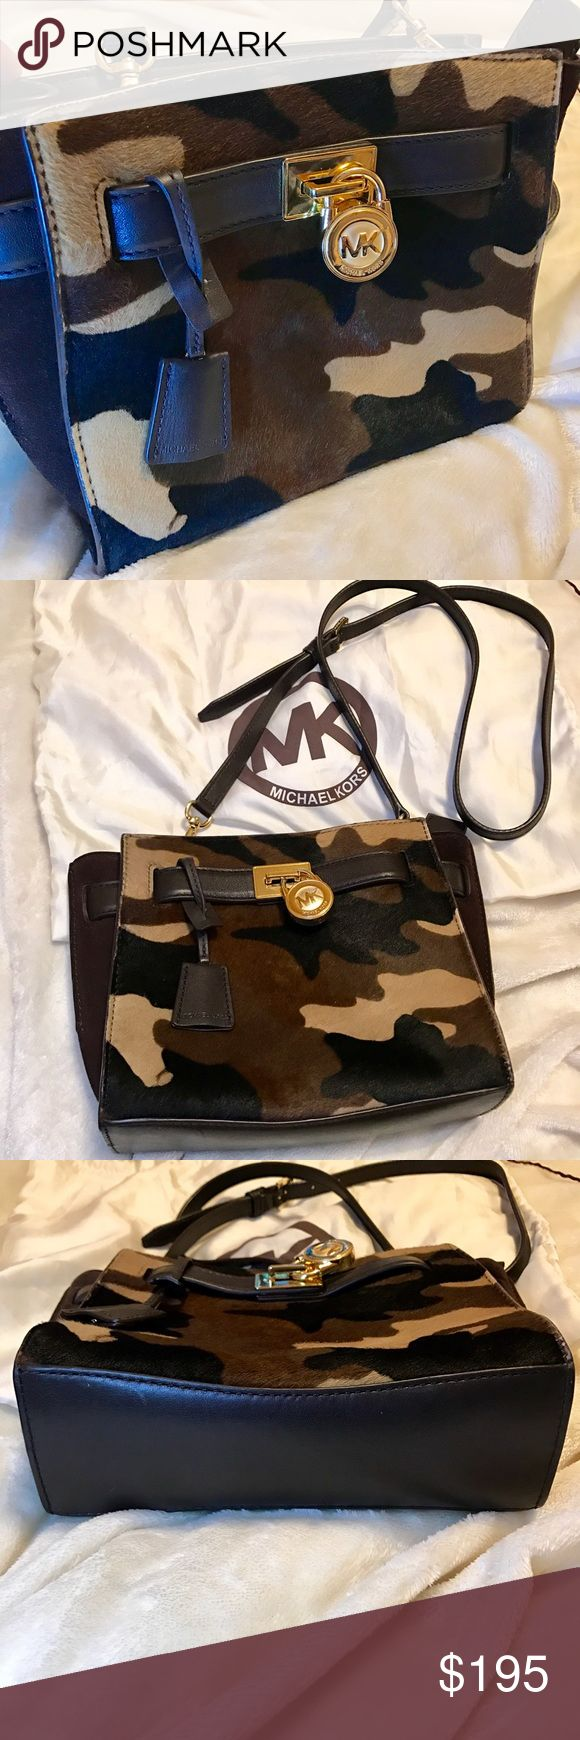 """Michael Kors Camo Crossbody Beautiful calf hair and leather cross body bag. Perfect for someone who loves camouflage and smaller bags! Only carried once, comes from a smoke free home, and has no stains or signs of wear...looks brand new! 8.4""""L x7""""H x 4""""W No trades, open to reasonable offers! Michael Kors Bags Crossbody Bags"""